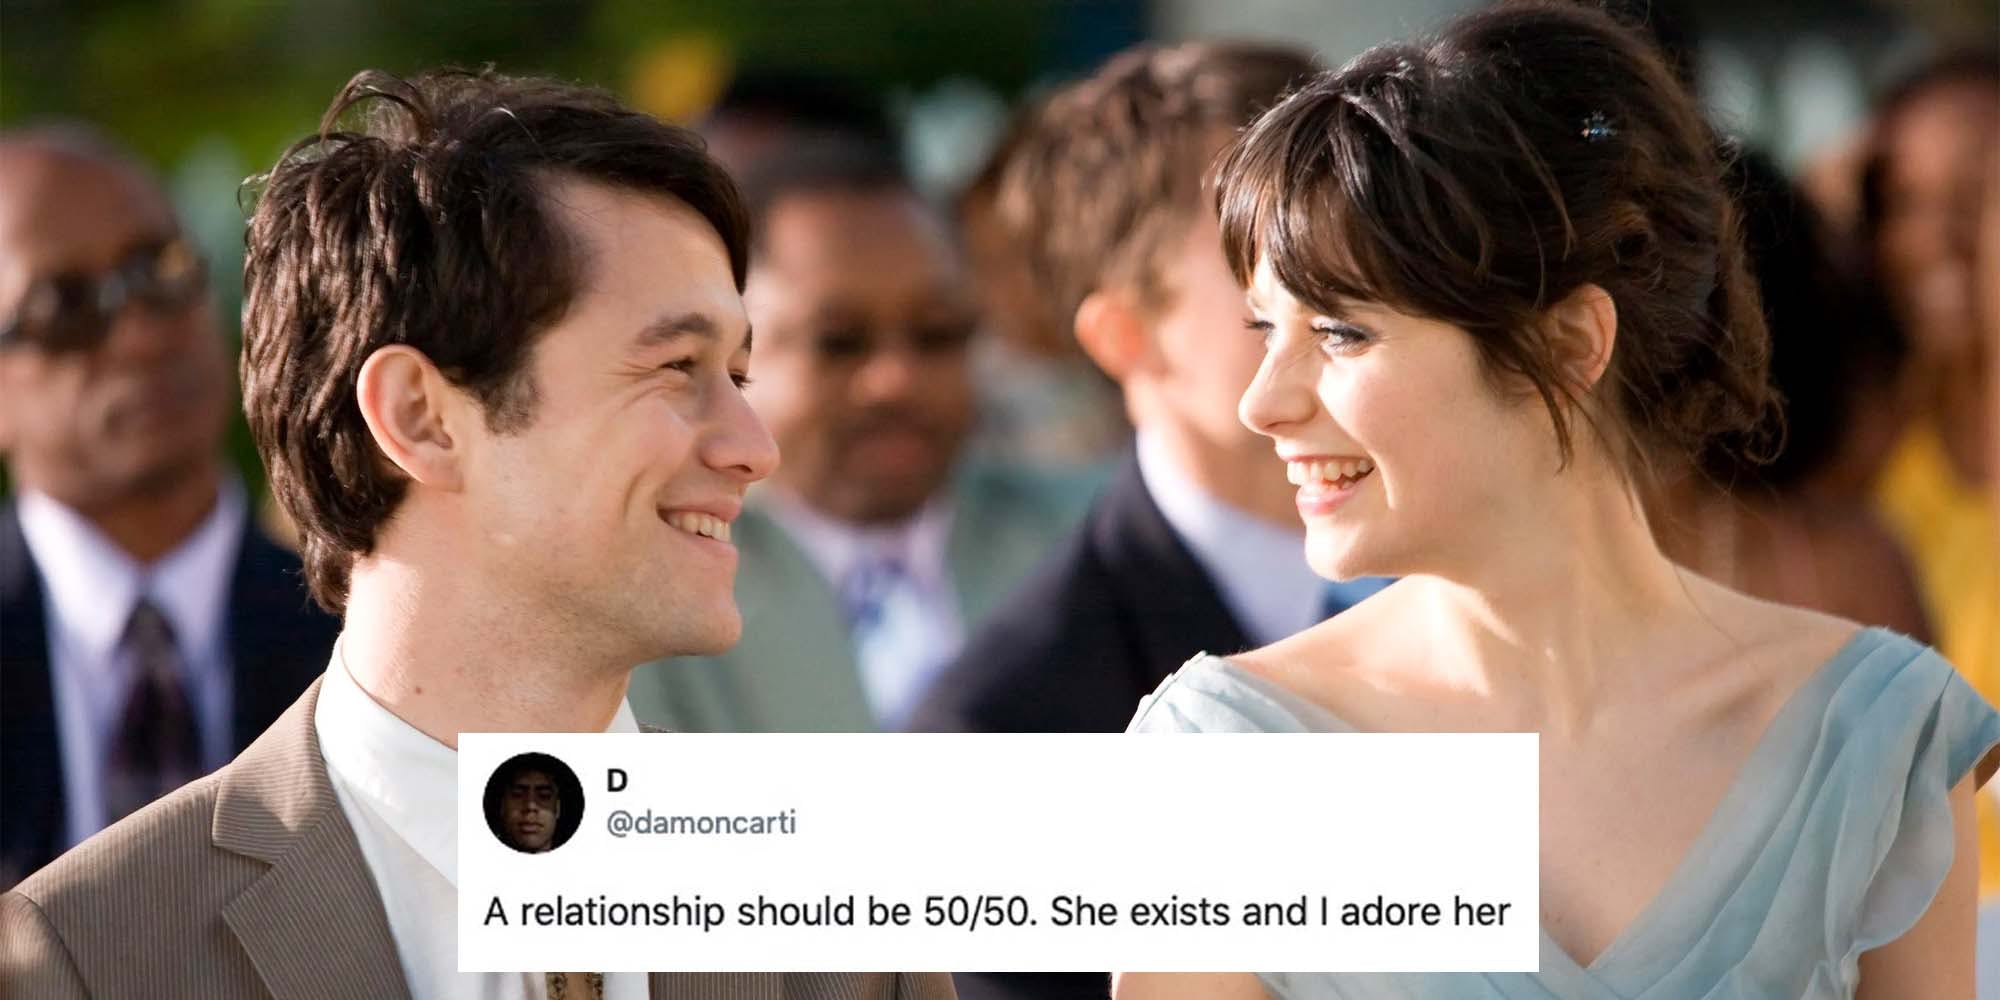 a relationship should be 50/50